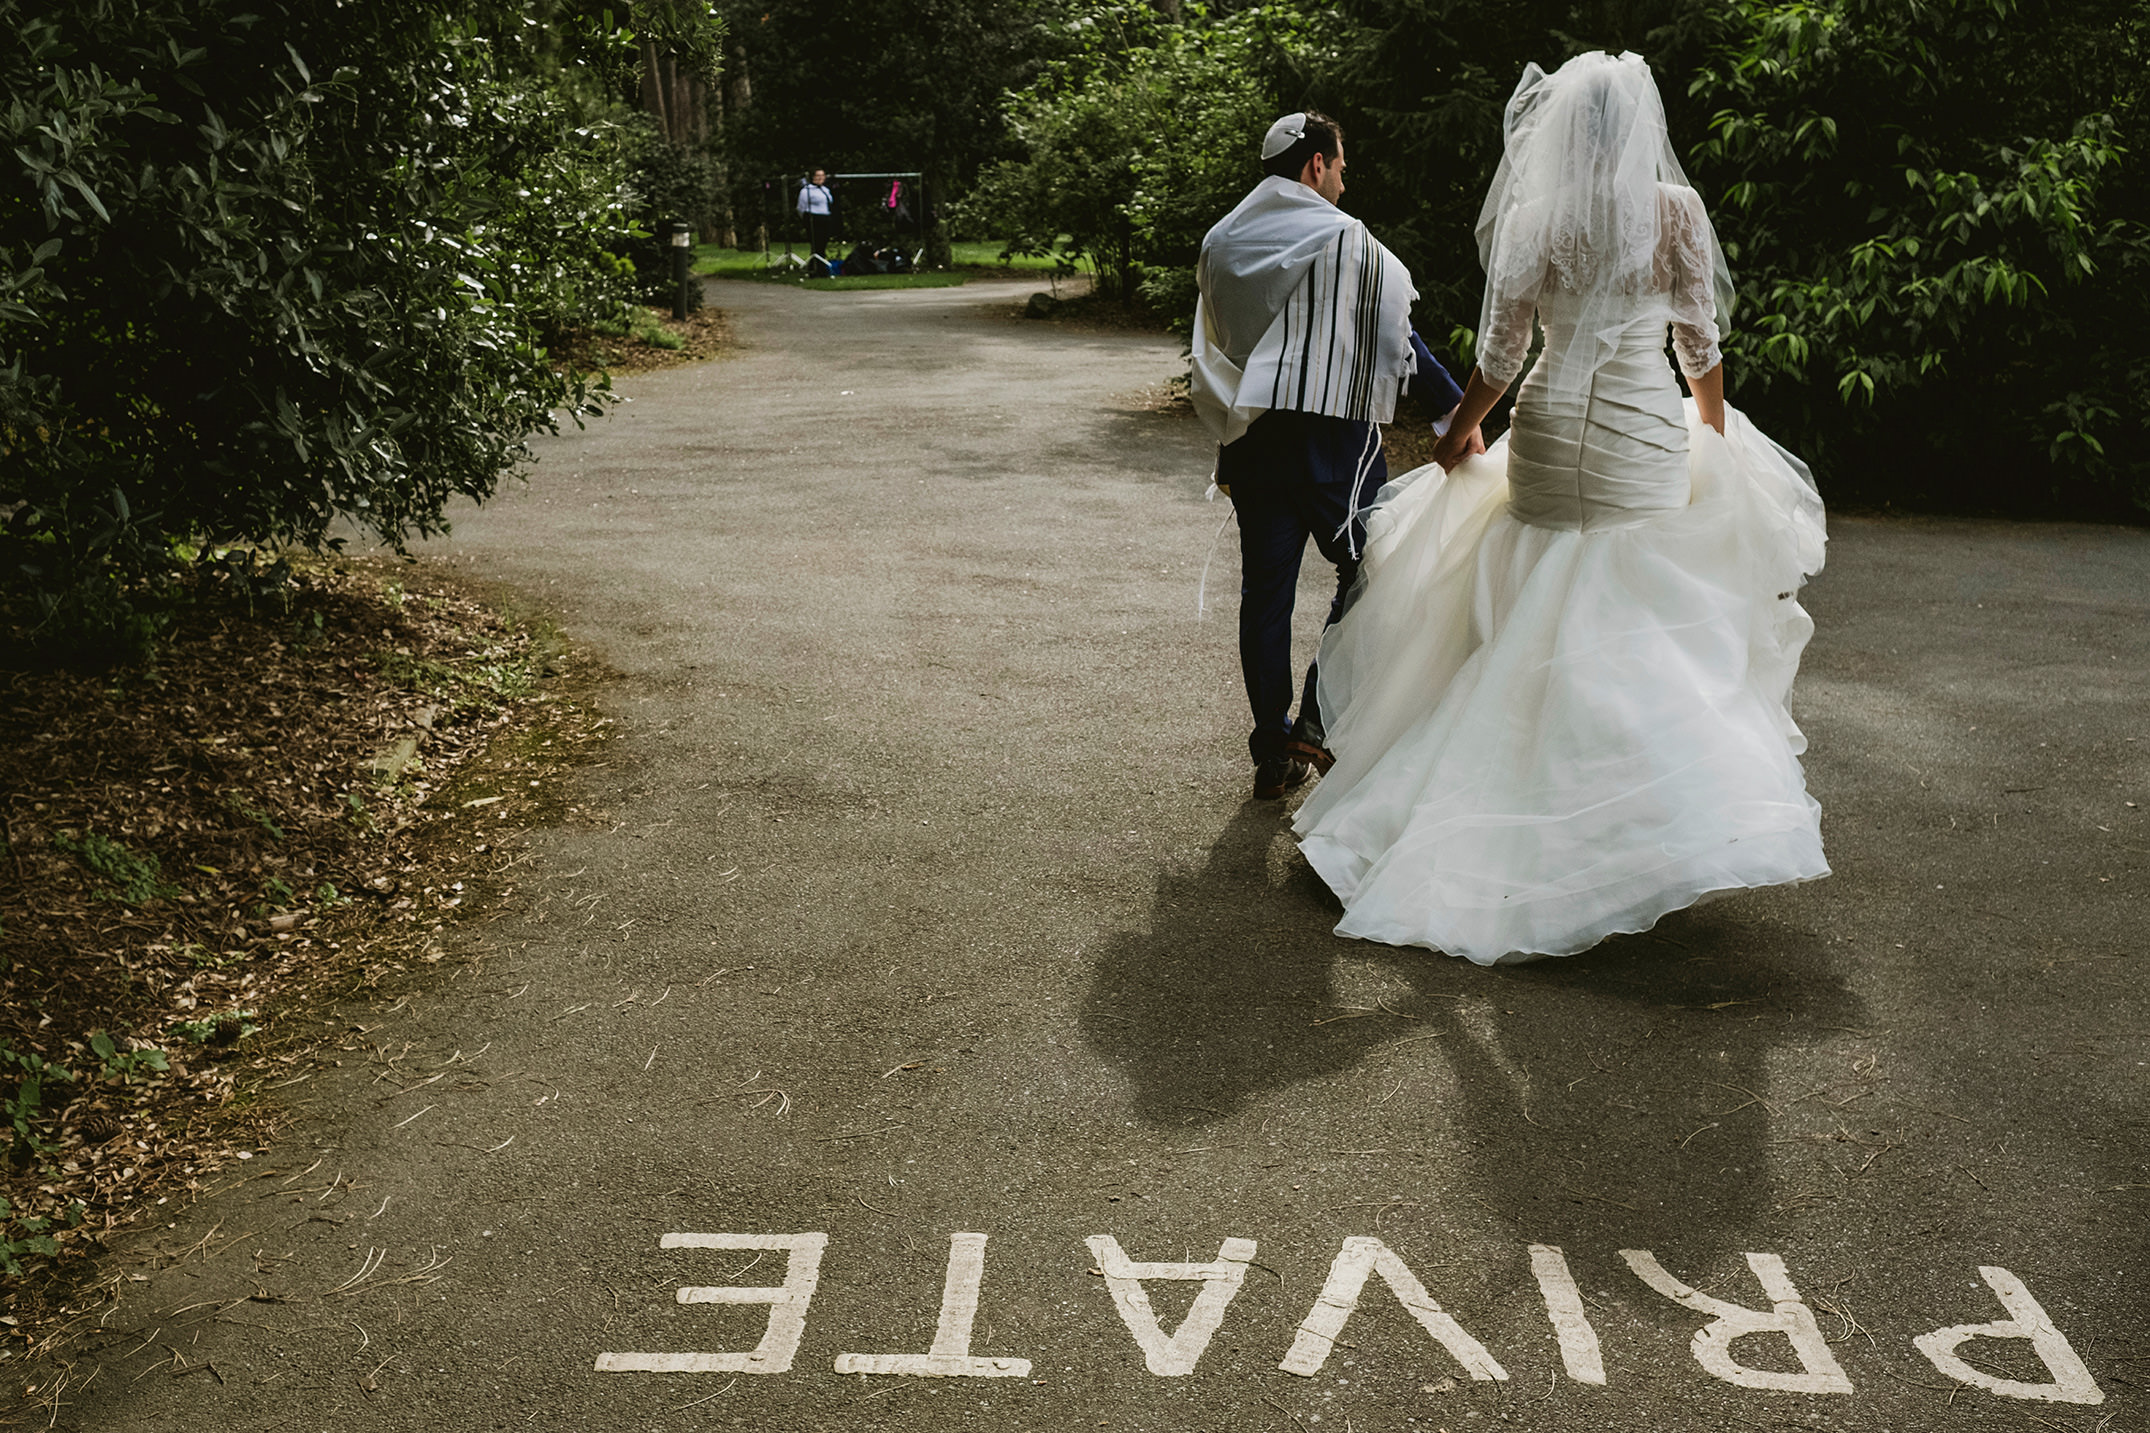 Kew Gardens bride and groom alone time. Private sign on the road.